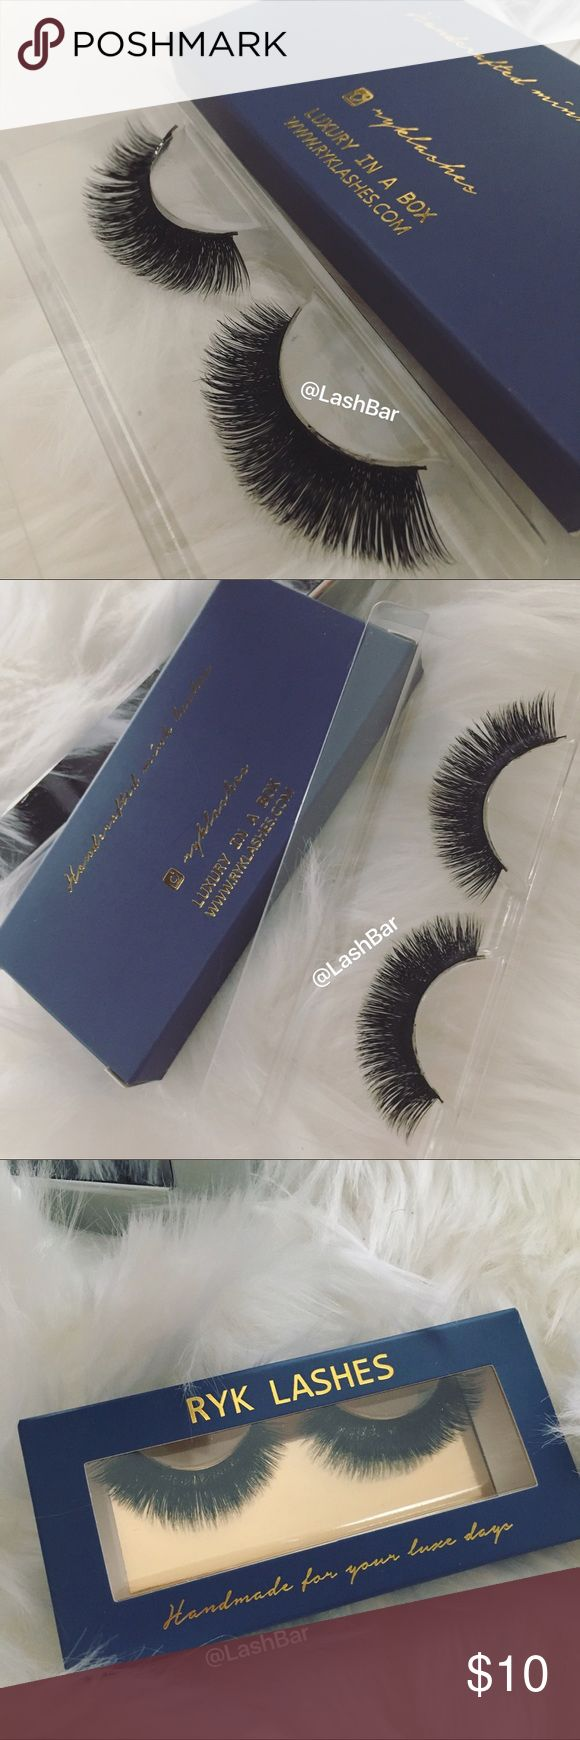 Mink eyelashes fur mink lashes Lilly new Velour 1 Pair full flutter mink lashes Brand new No glue Makeup False Eyelashes